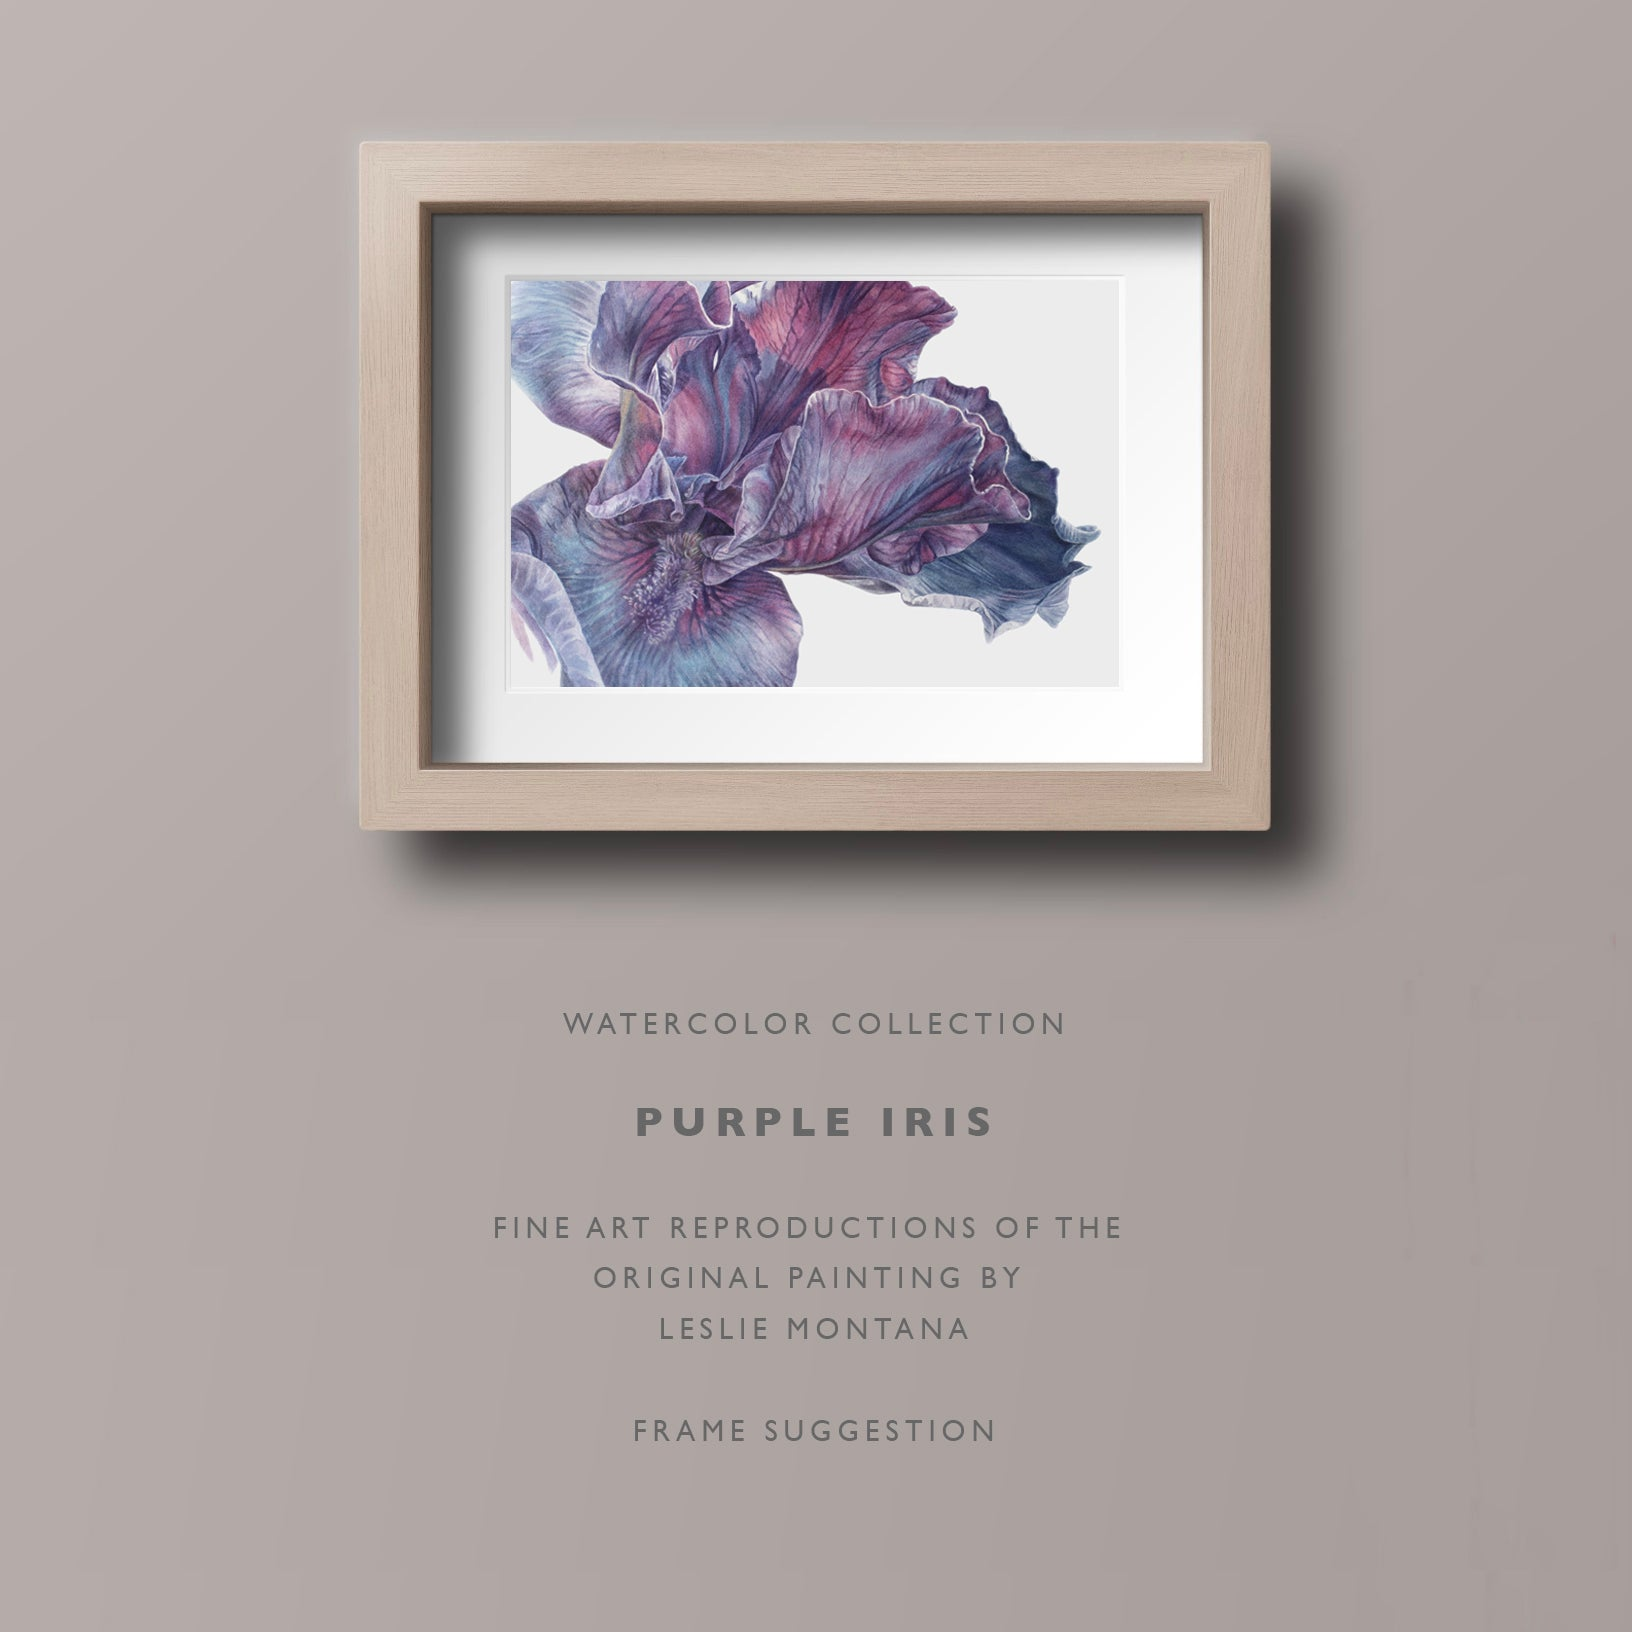 Shop Purple Iris watercolor reproductions, fine art prints by Leslie Montana